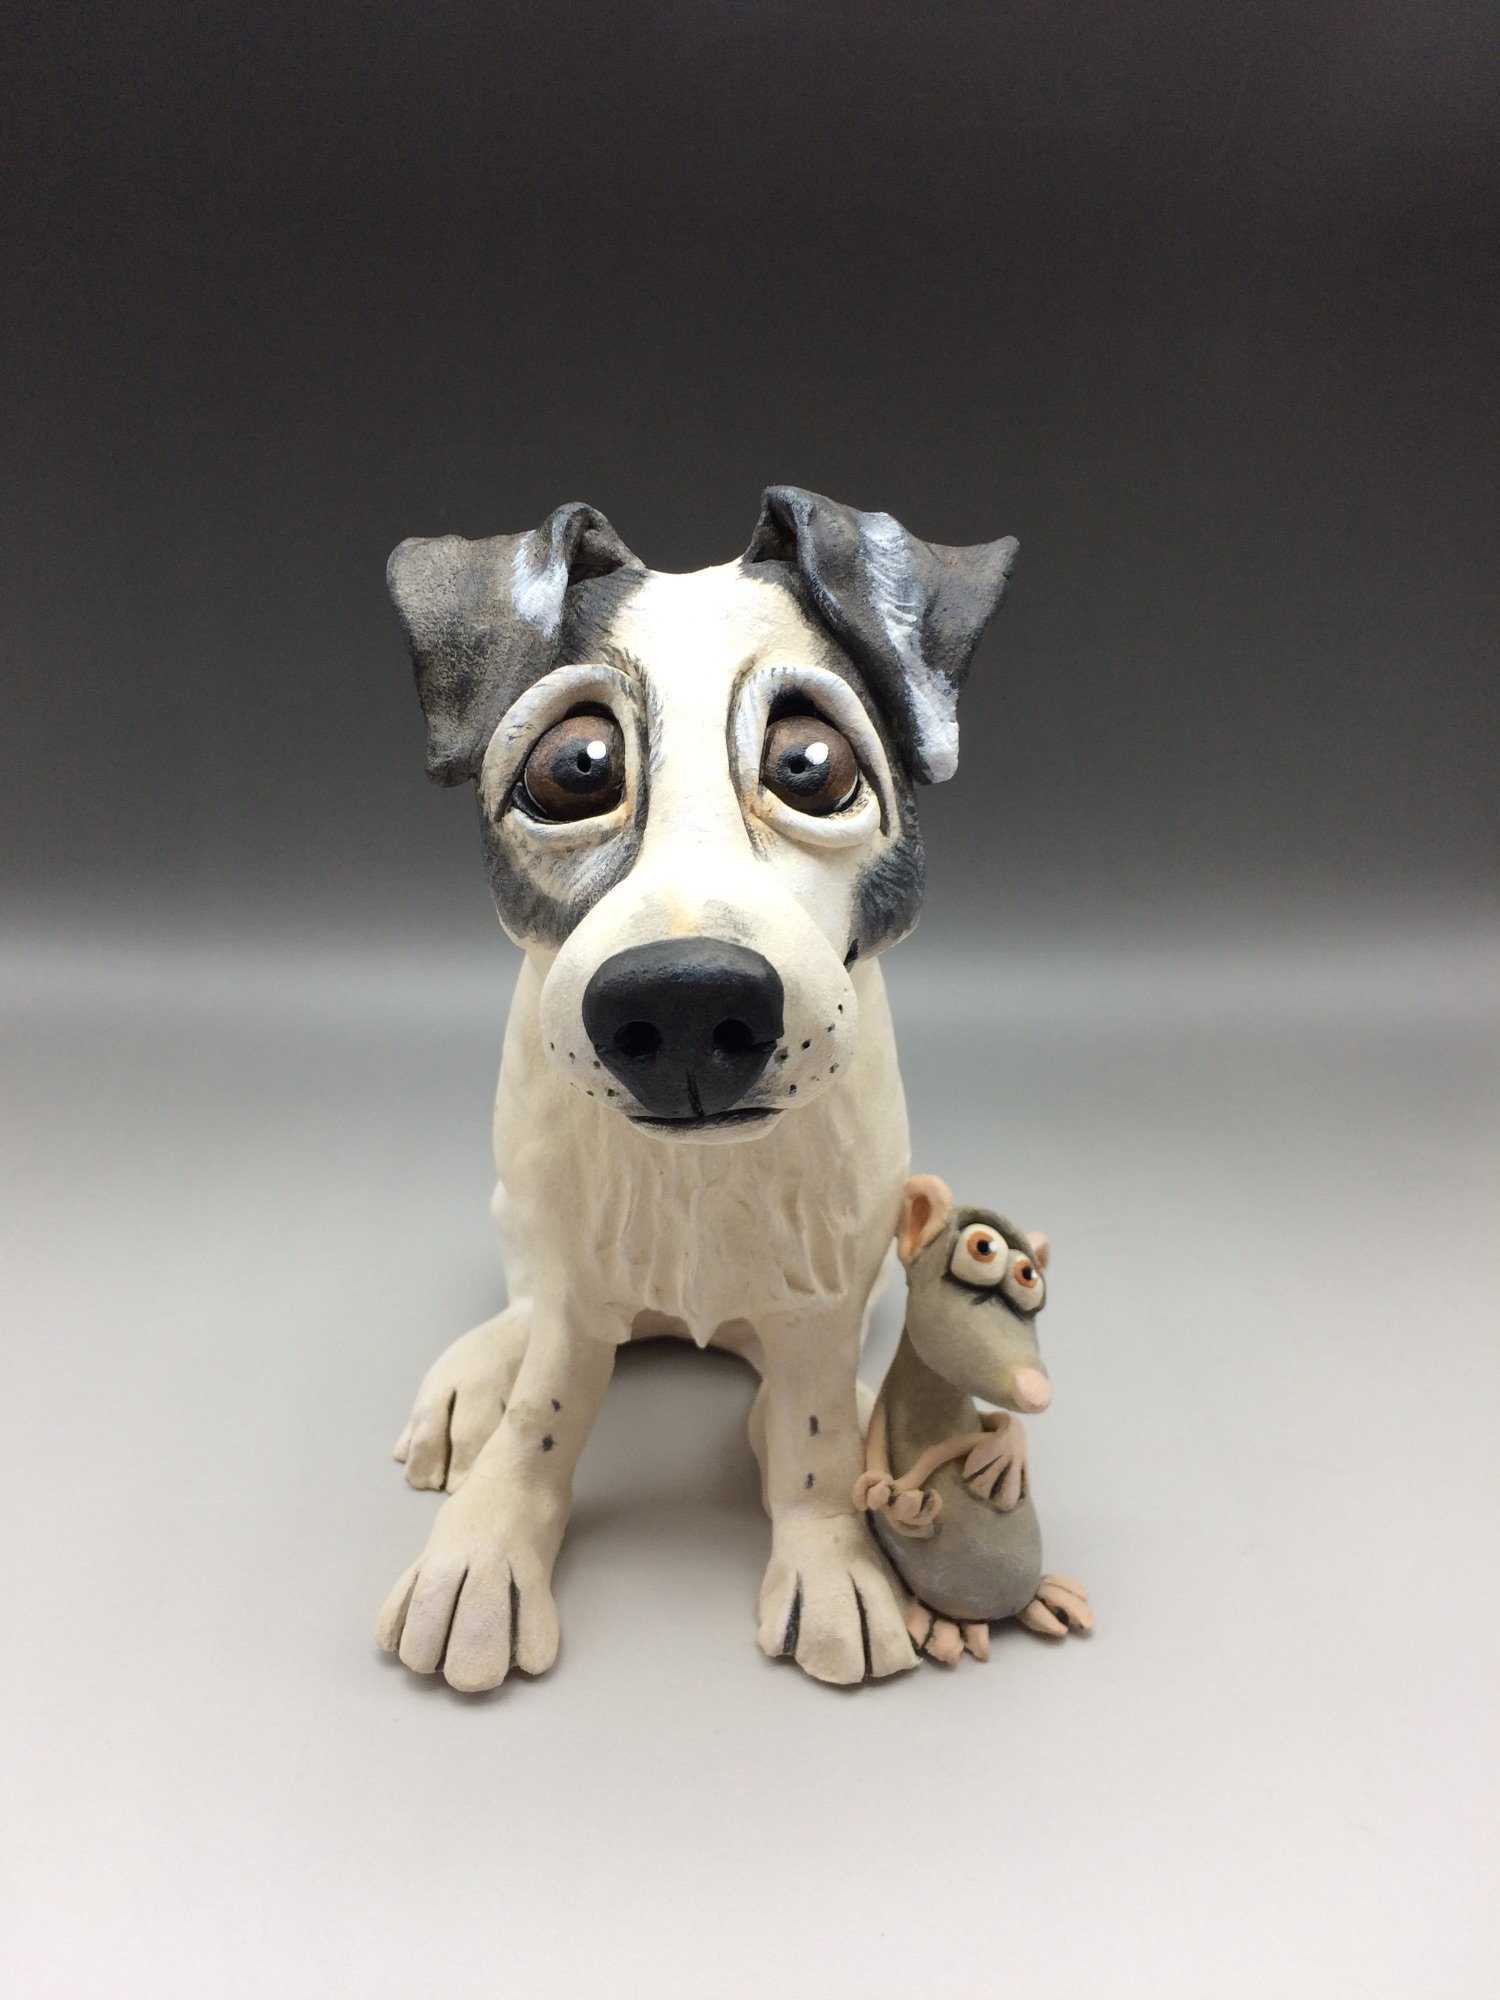 Jack Russell Terrier Dog Sculpture Ceramic